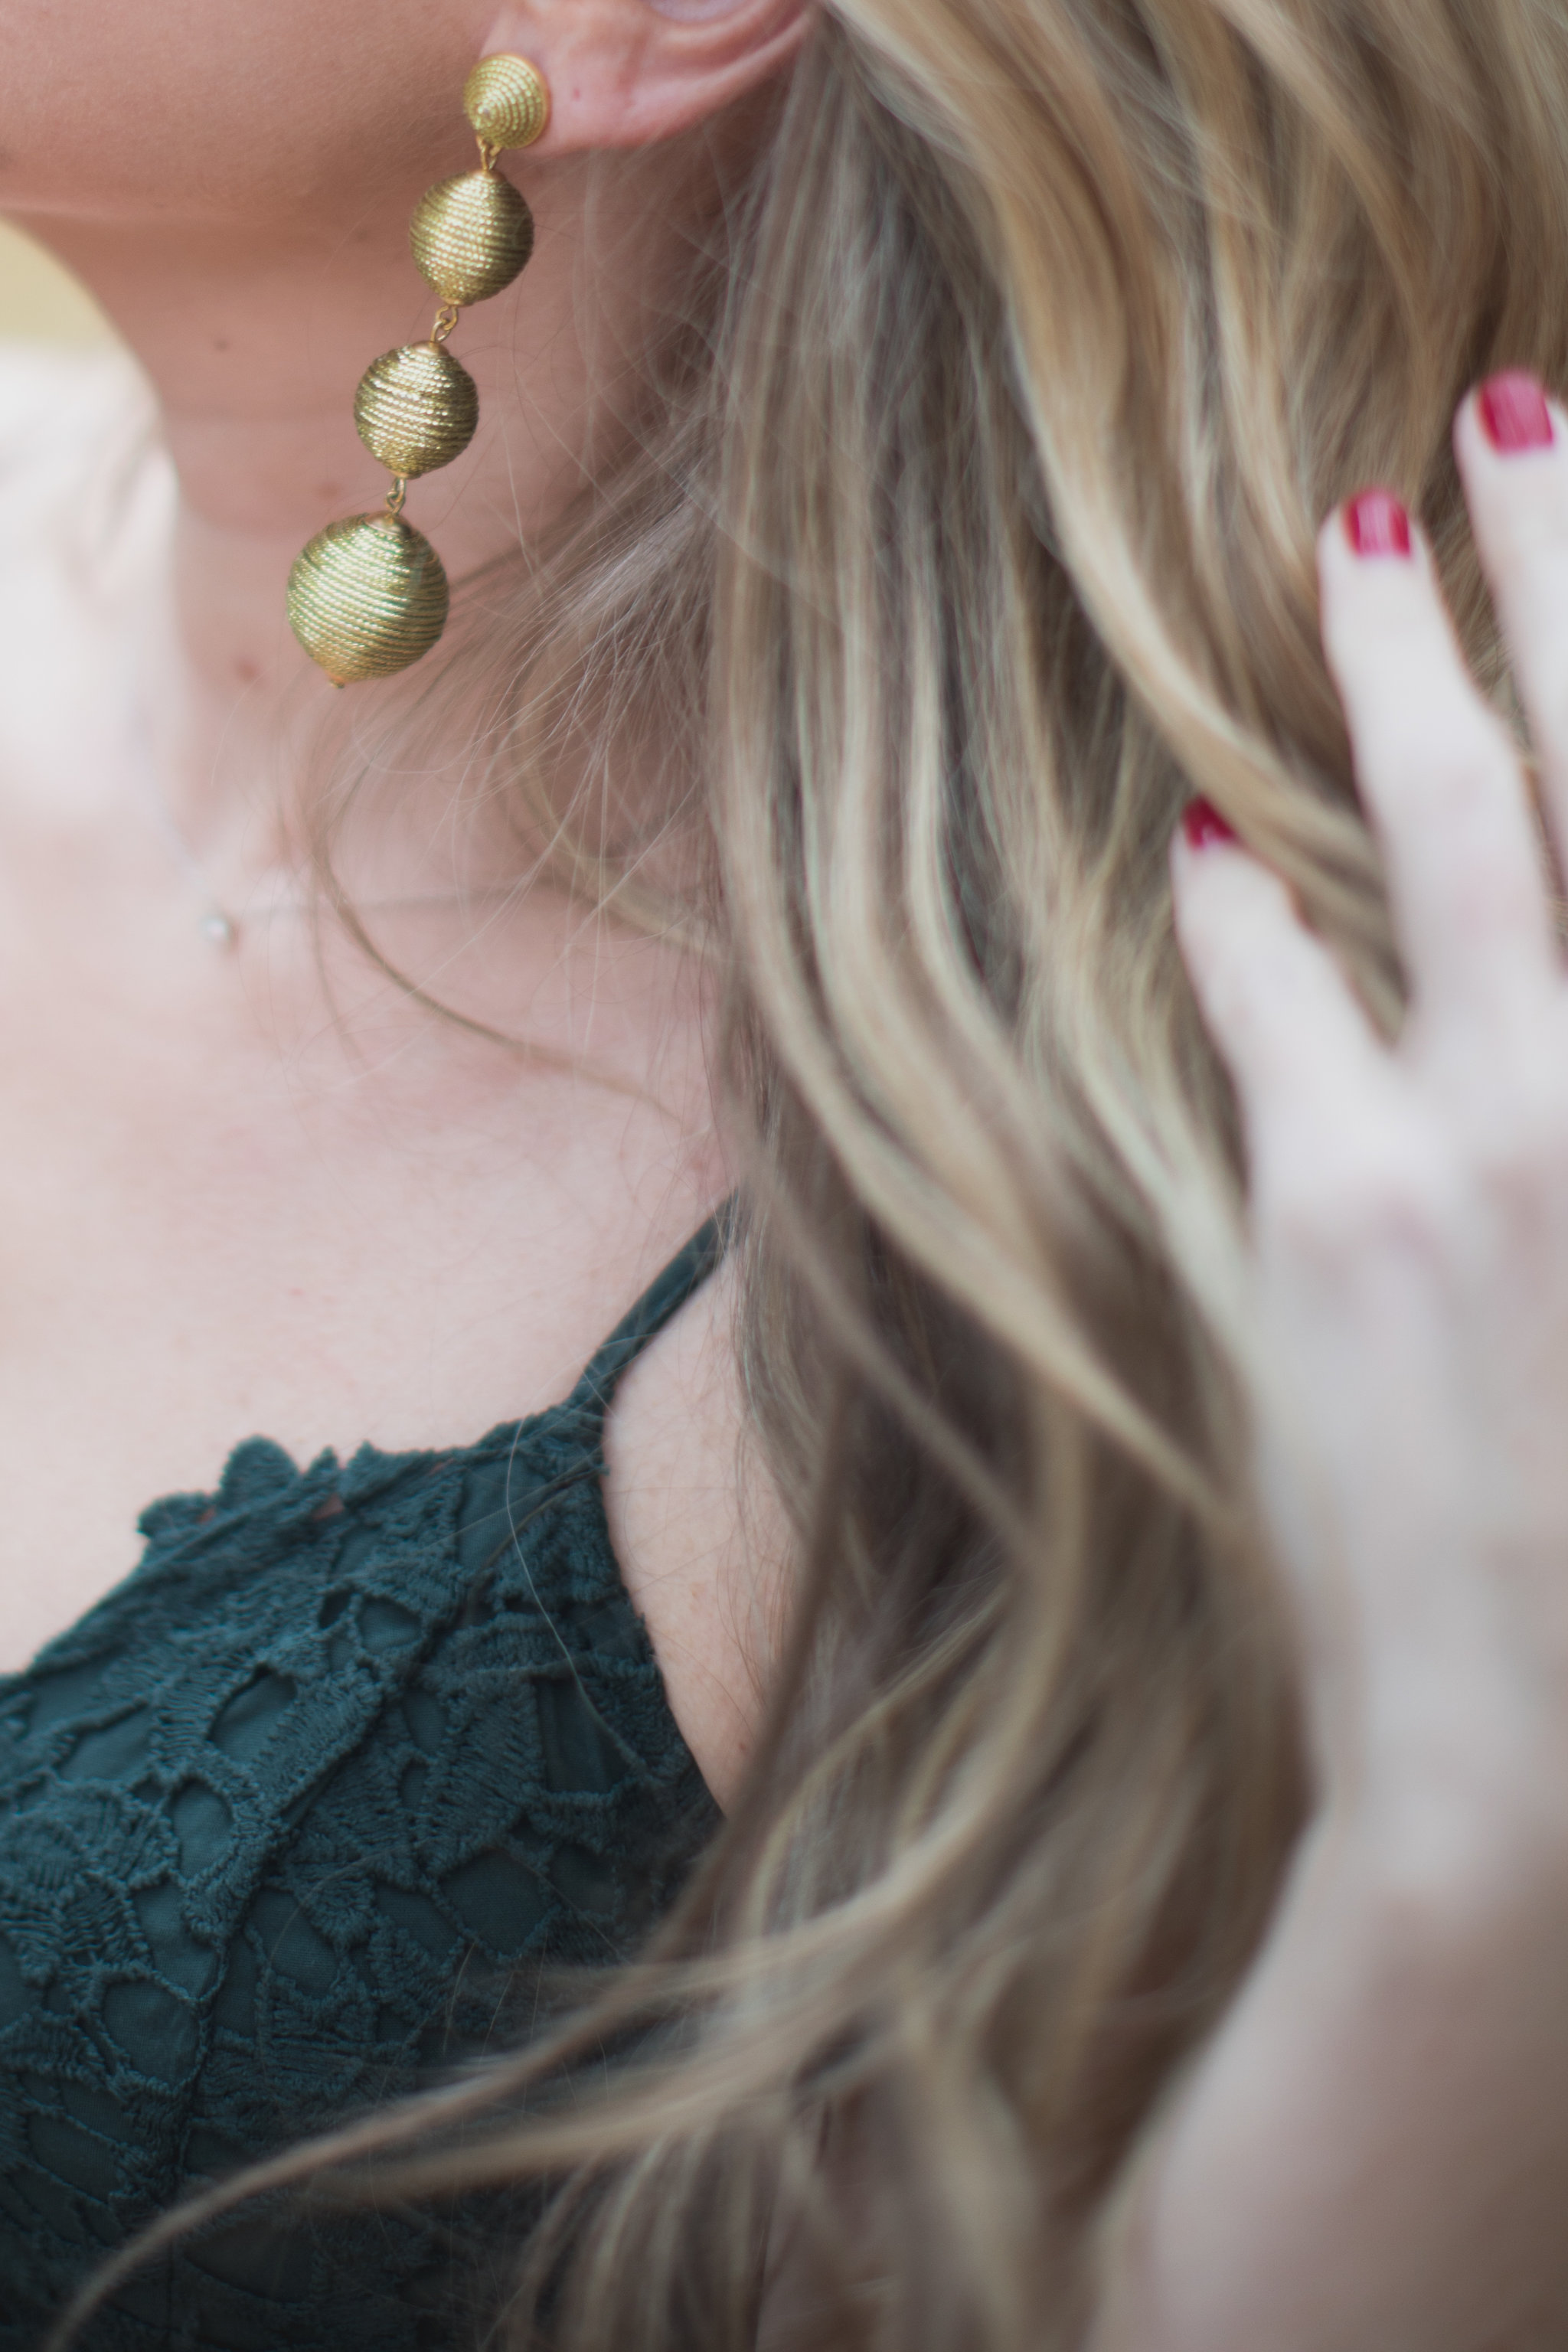 The perfect earrings for the holiday season! - The Perfect Holiday Dress under $100 by North Carolina fashion blogger Every Chic Way